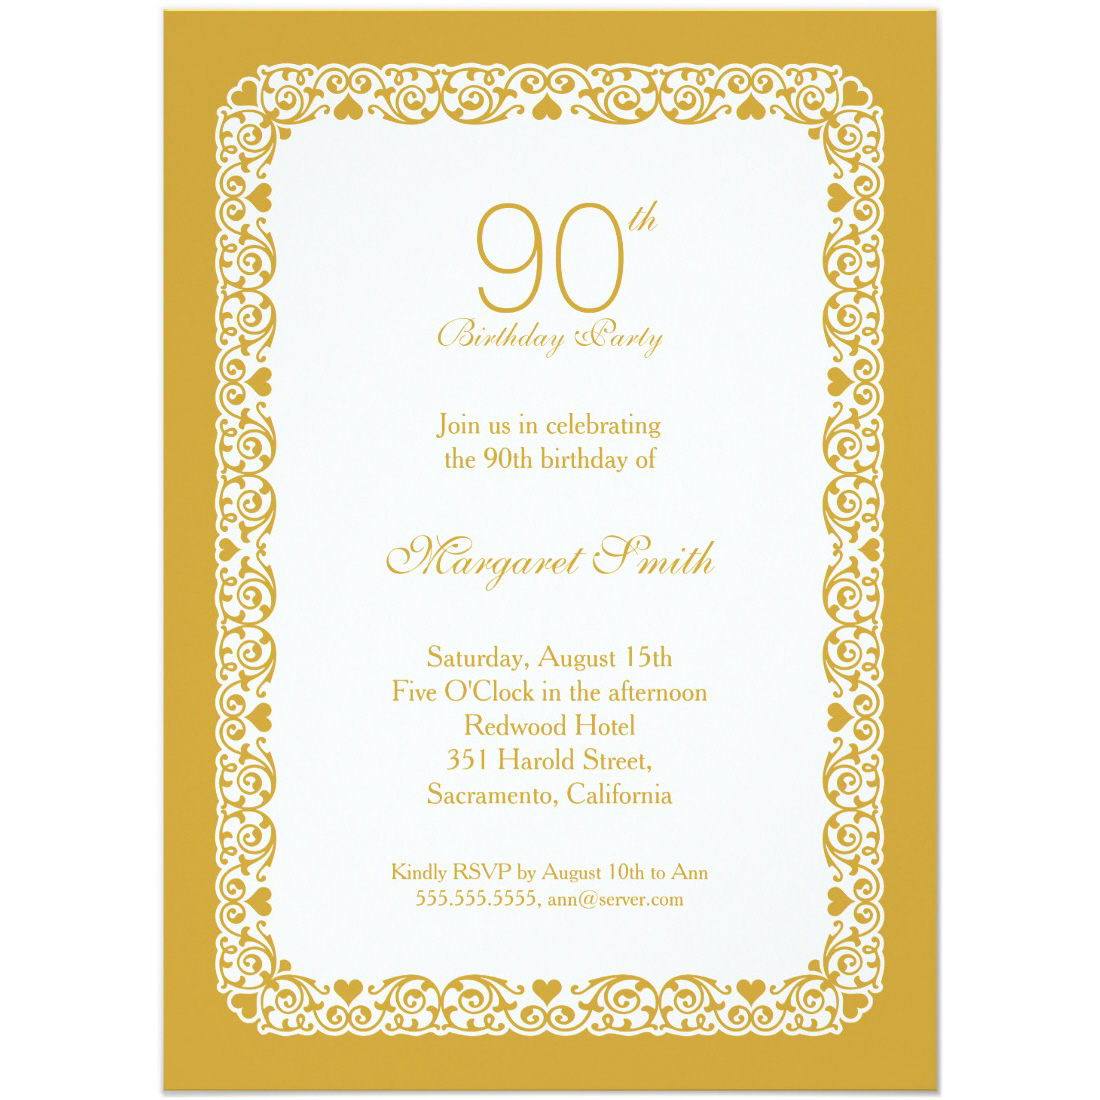 90th birthday invitation templates Archives Superdazzle Custom